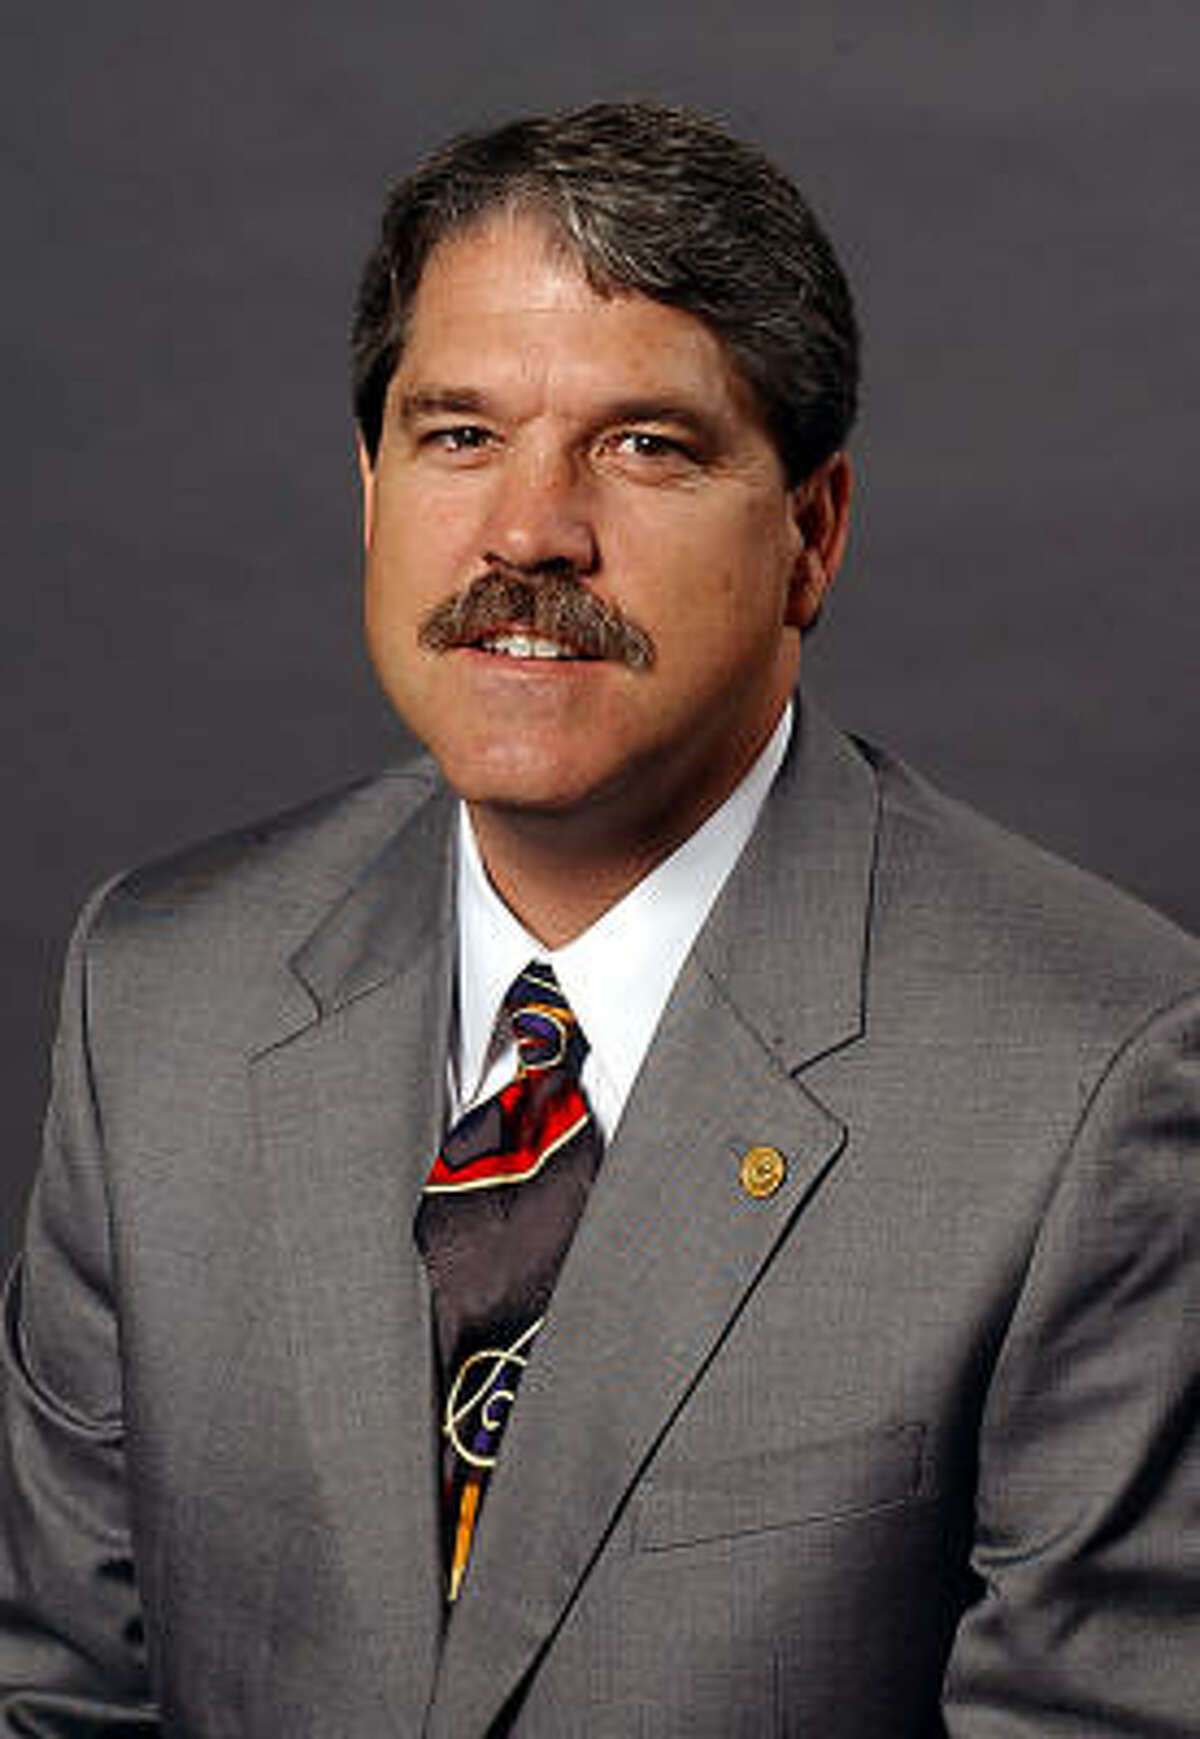 Rep. Larry Taylor, R-Friendswood